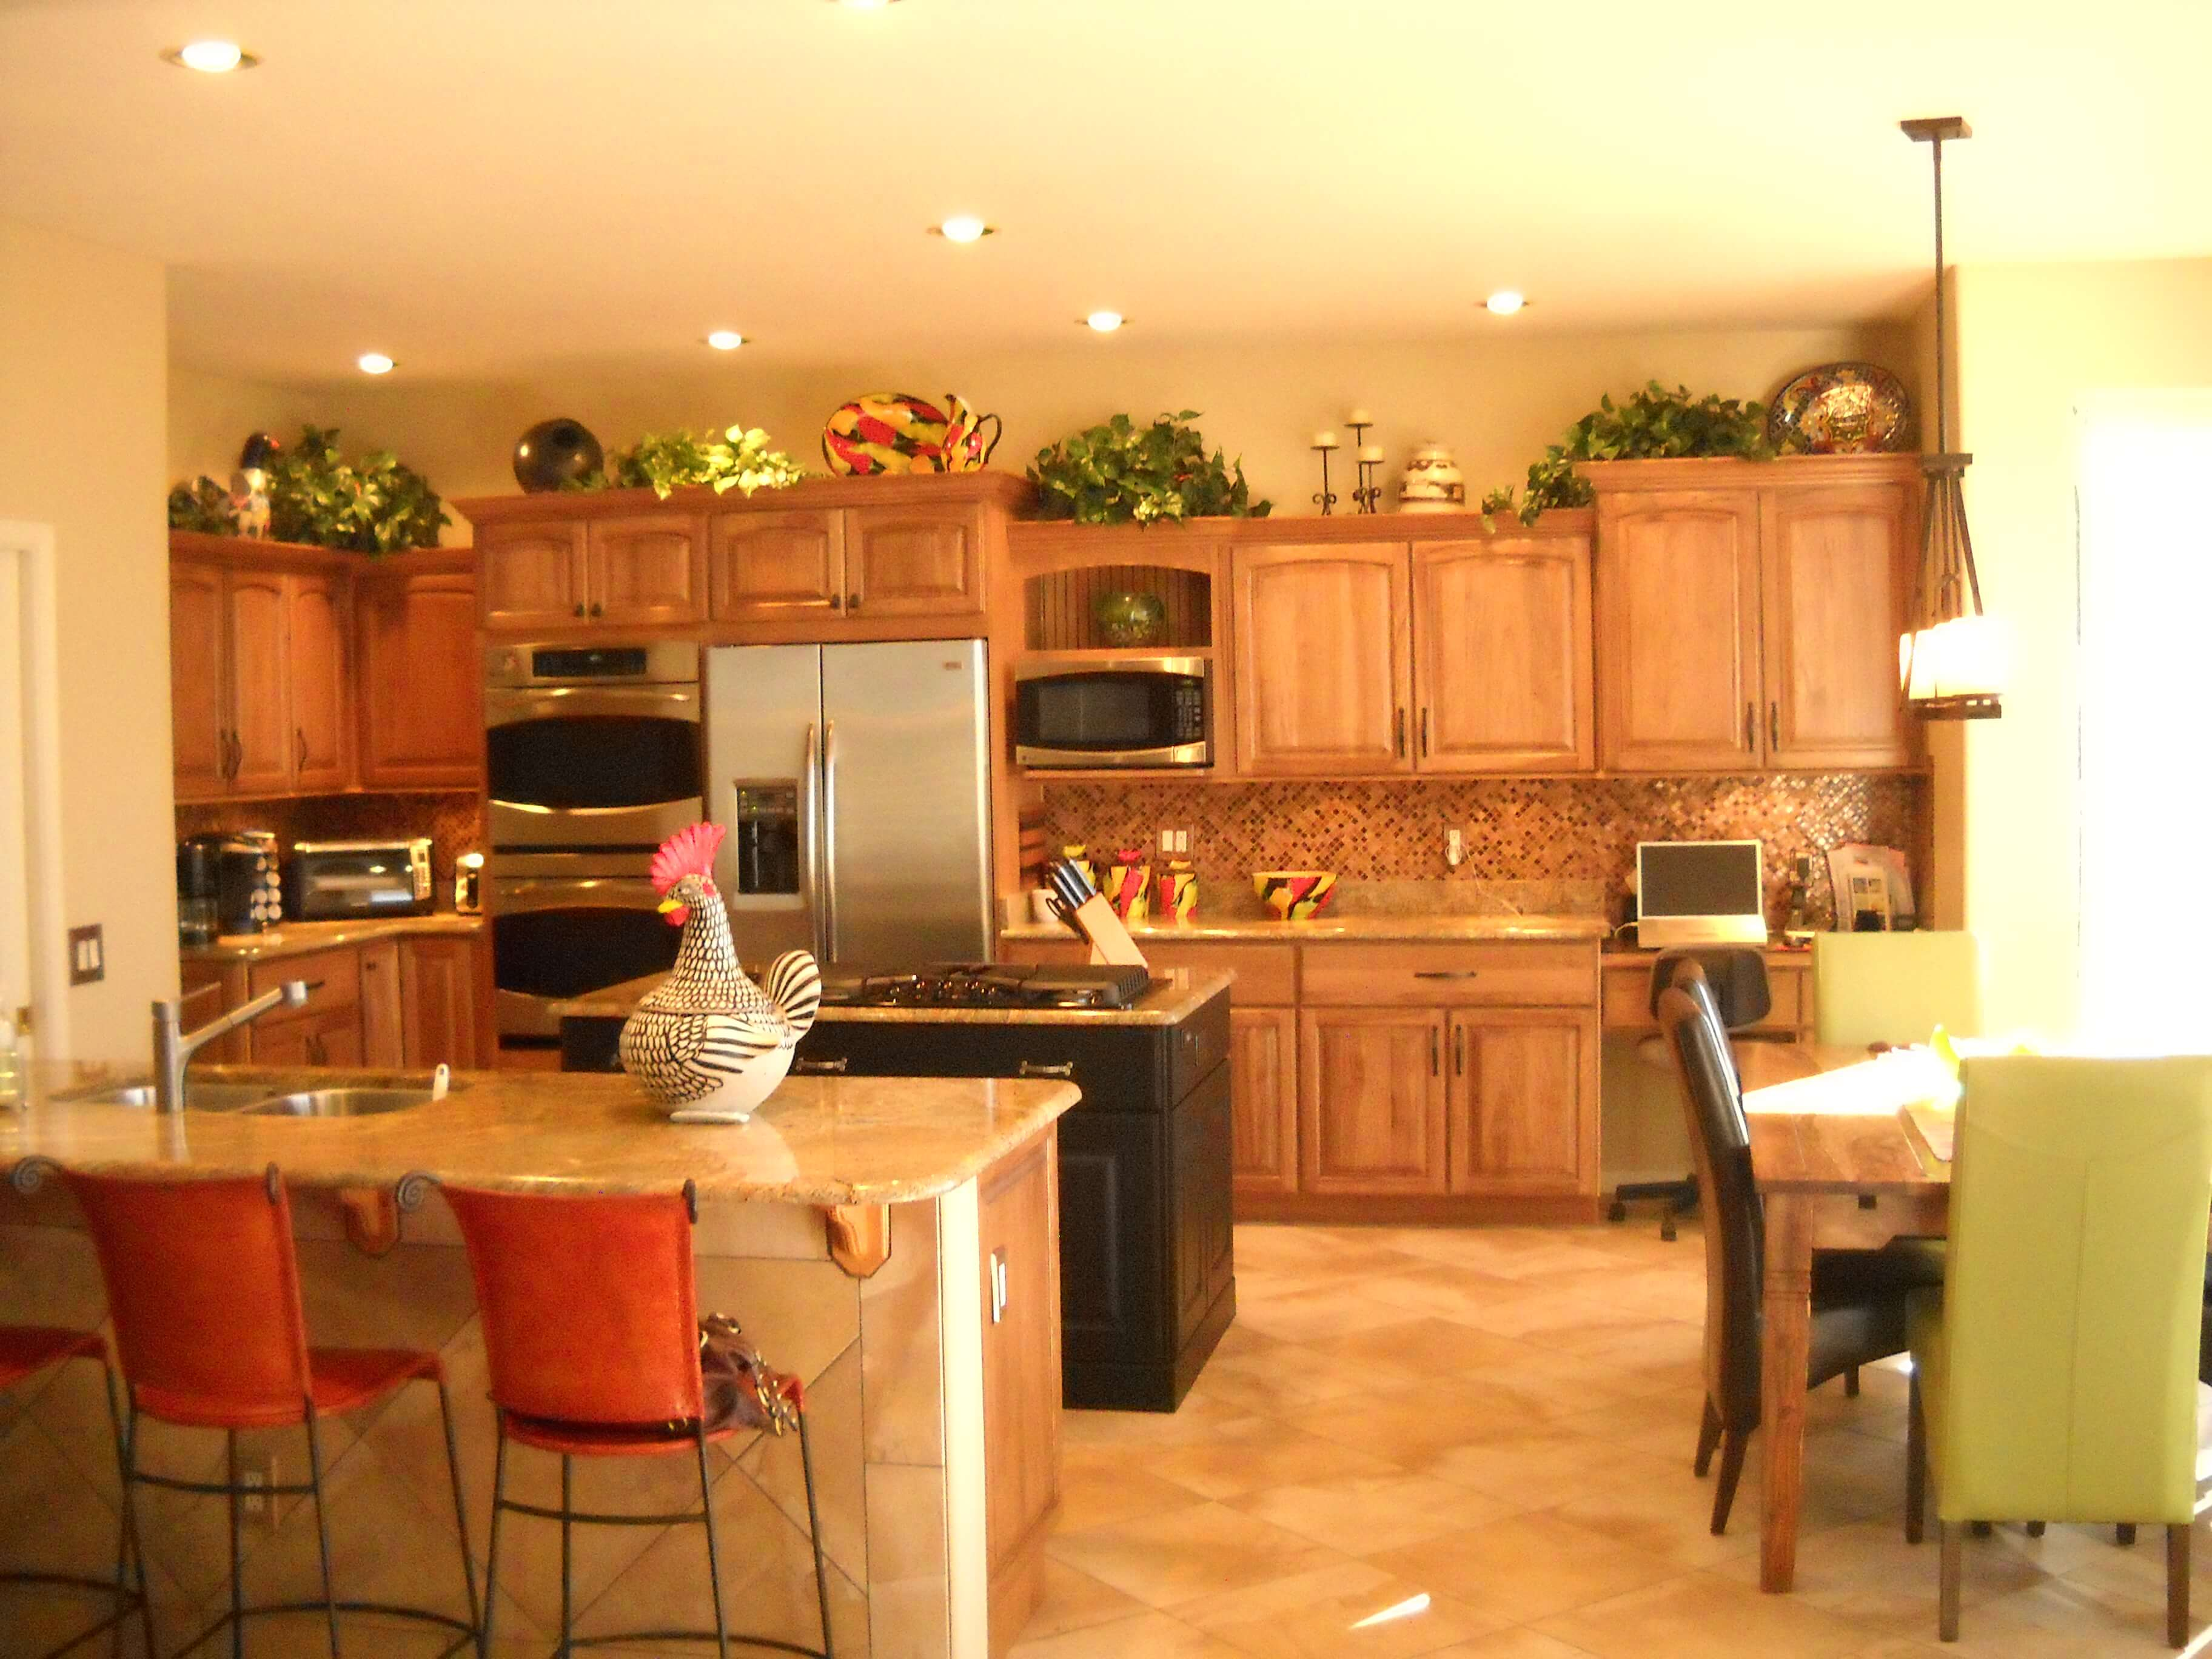 Tucson cabinet refacing southwest kitchen and bath - Kitchen cabinets southwest ...